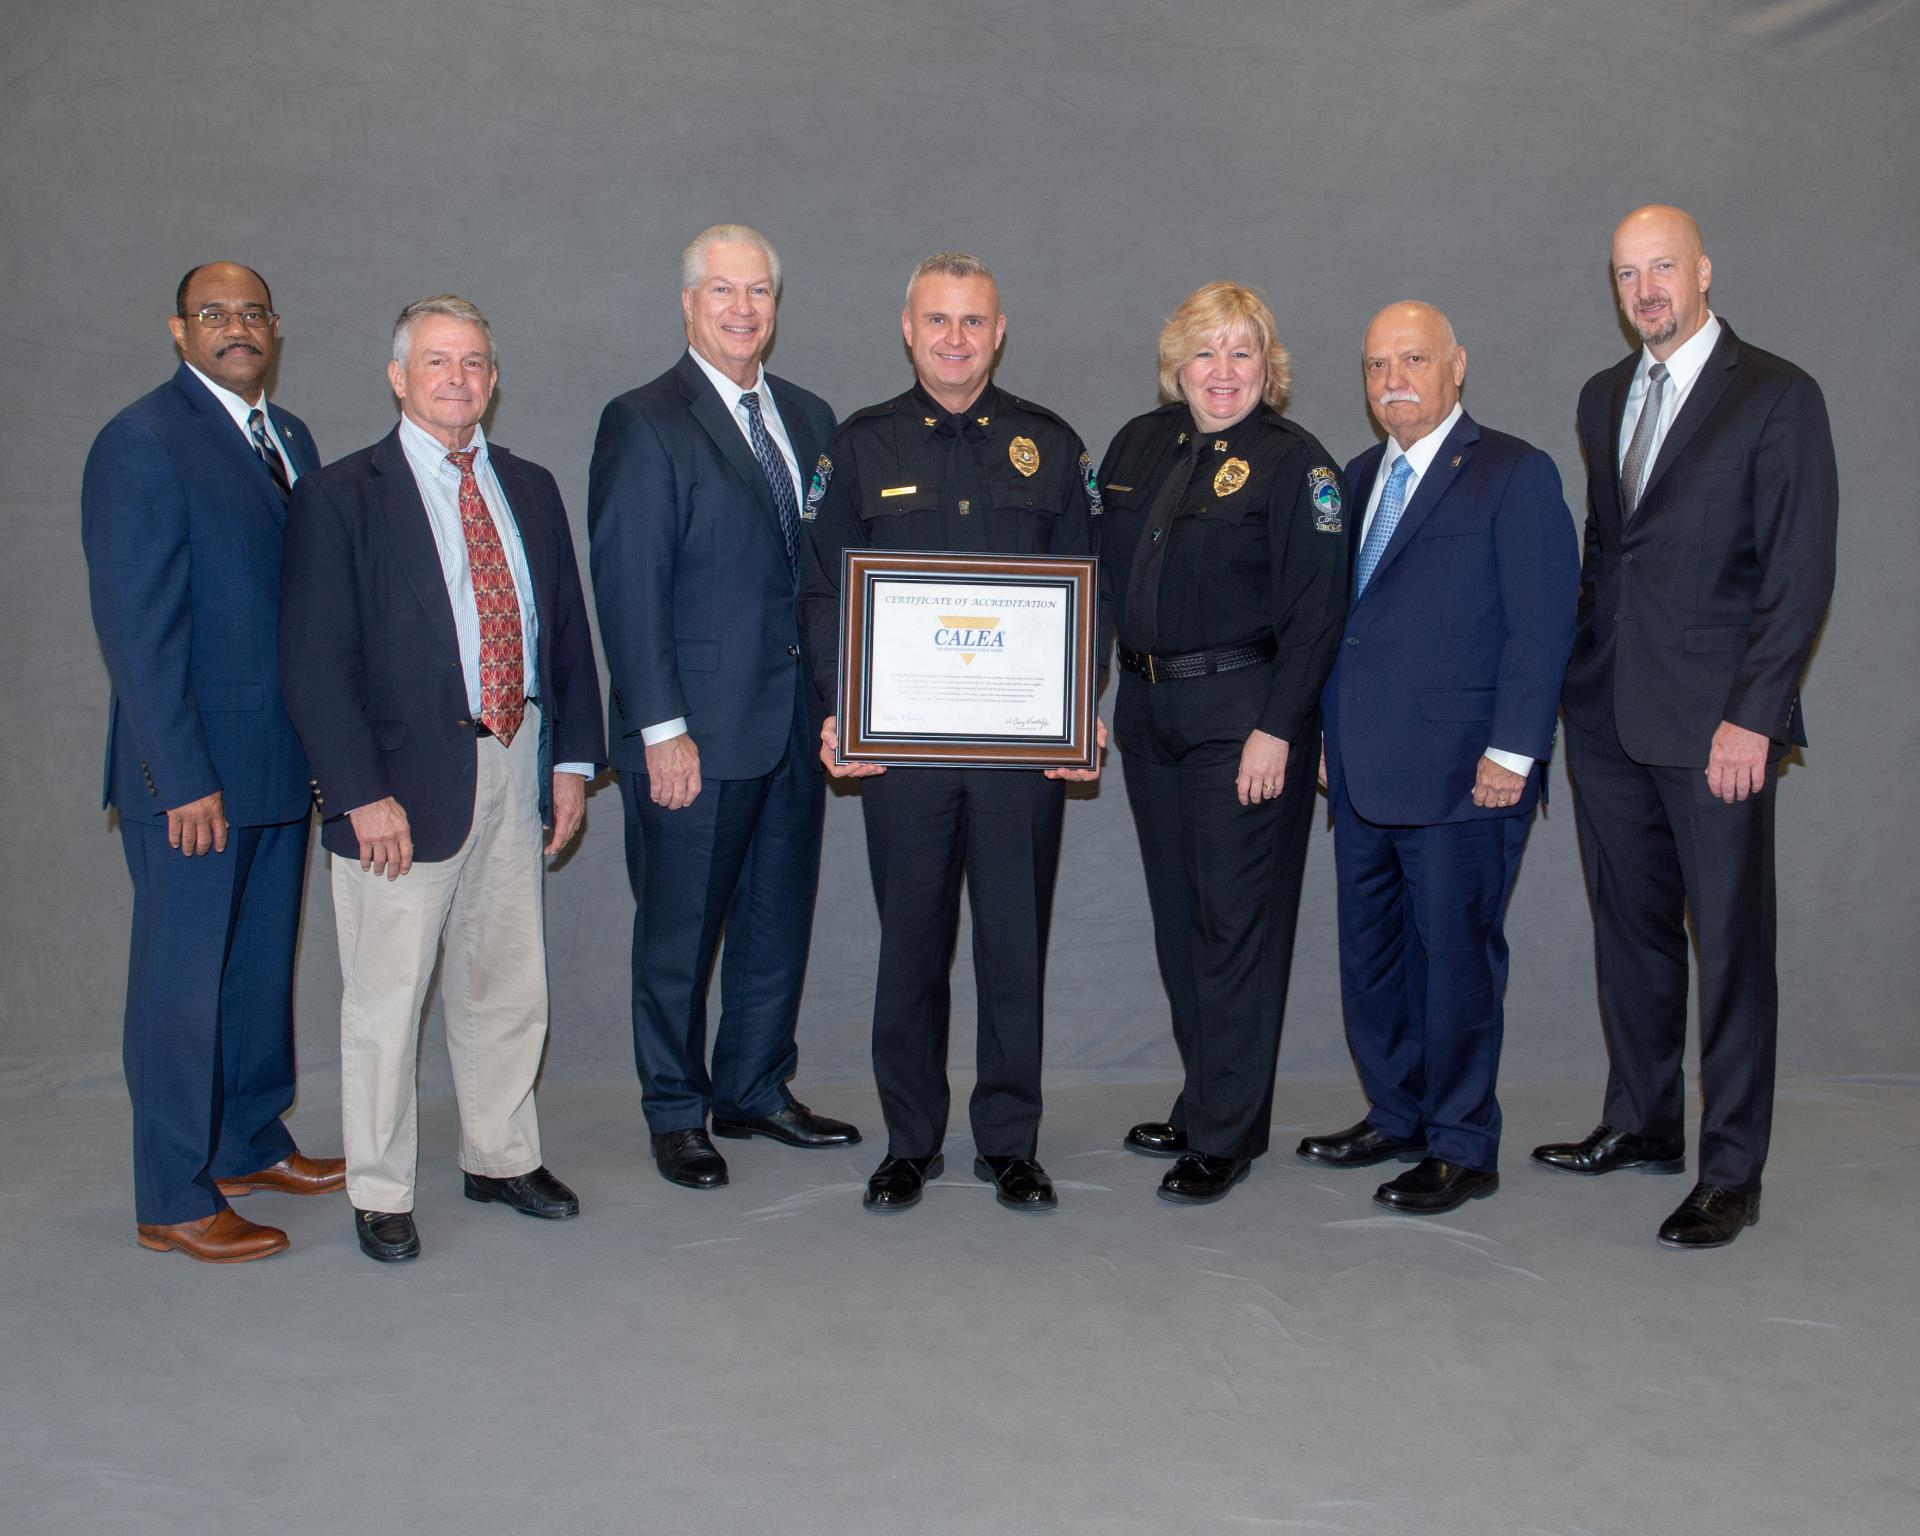 CALEA 2019 Award Photo_Conyers Police